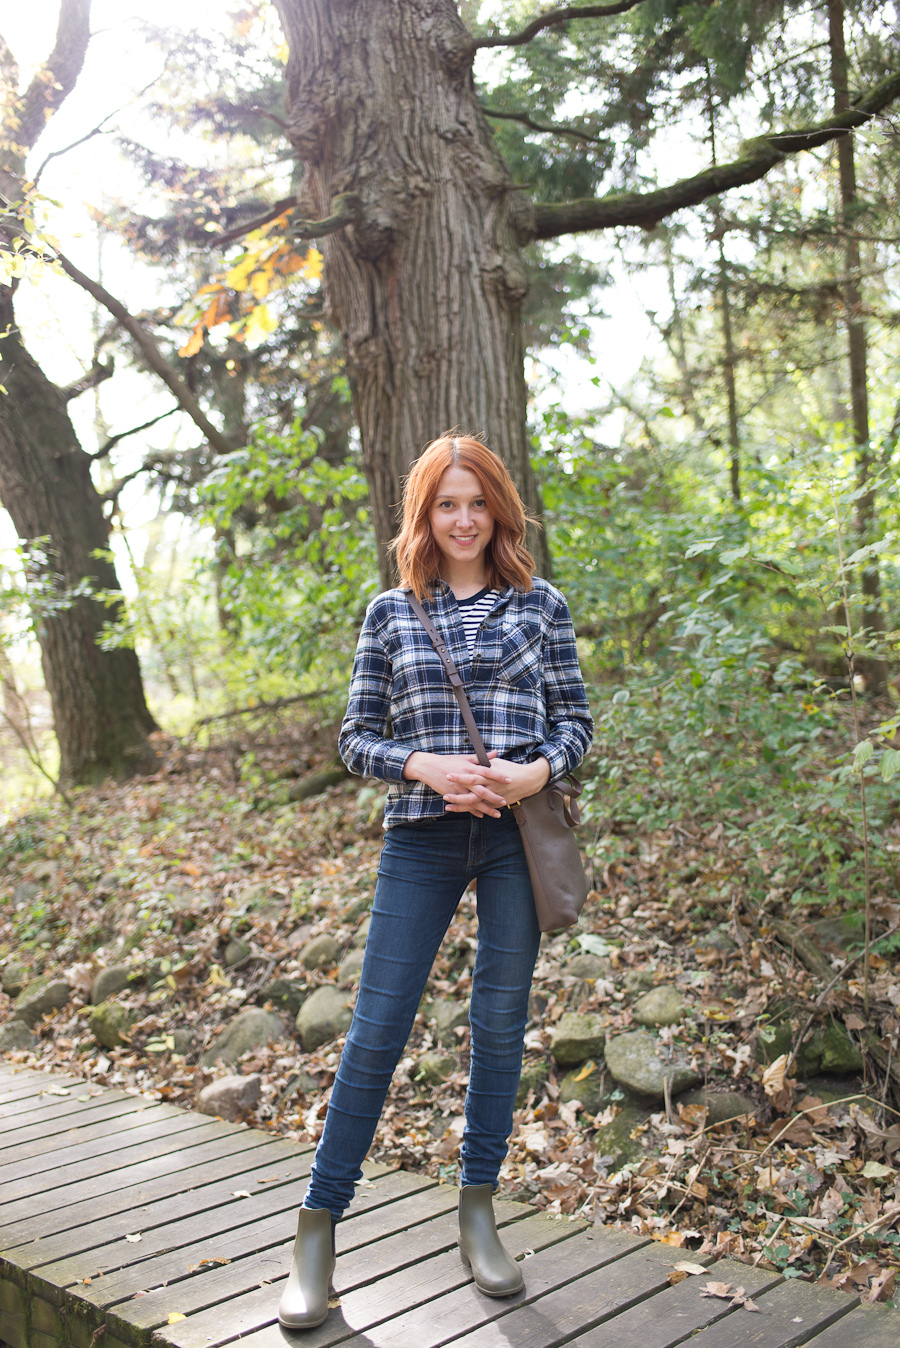 Alex Good-Beautyosaurus Lex-style-outfit-ootd-plaid-flannel-autumn-lifestyle-hike-gap denim-jeans-j.crew vest-madewell bag-crossbody purse-fall-autumn style-j.crew wellie boots